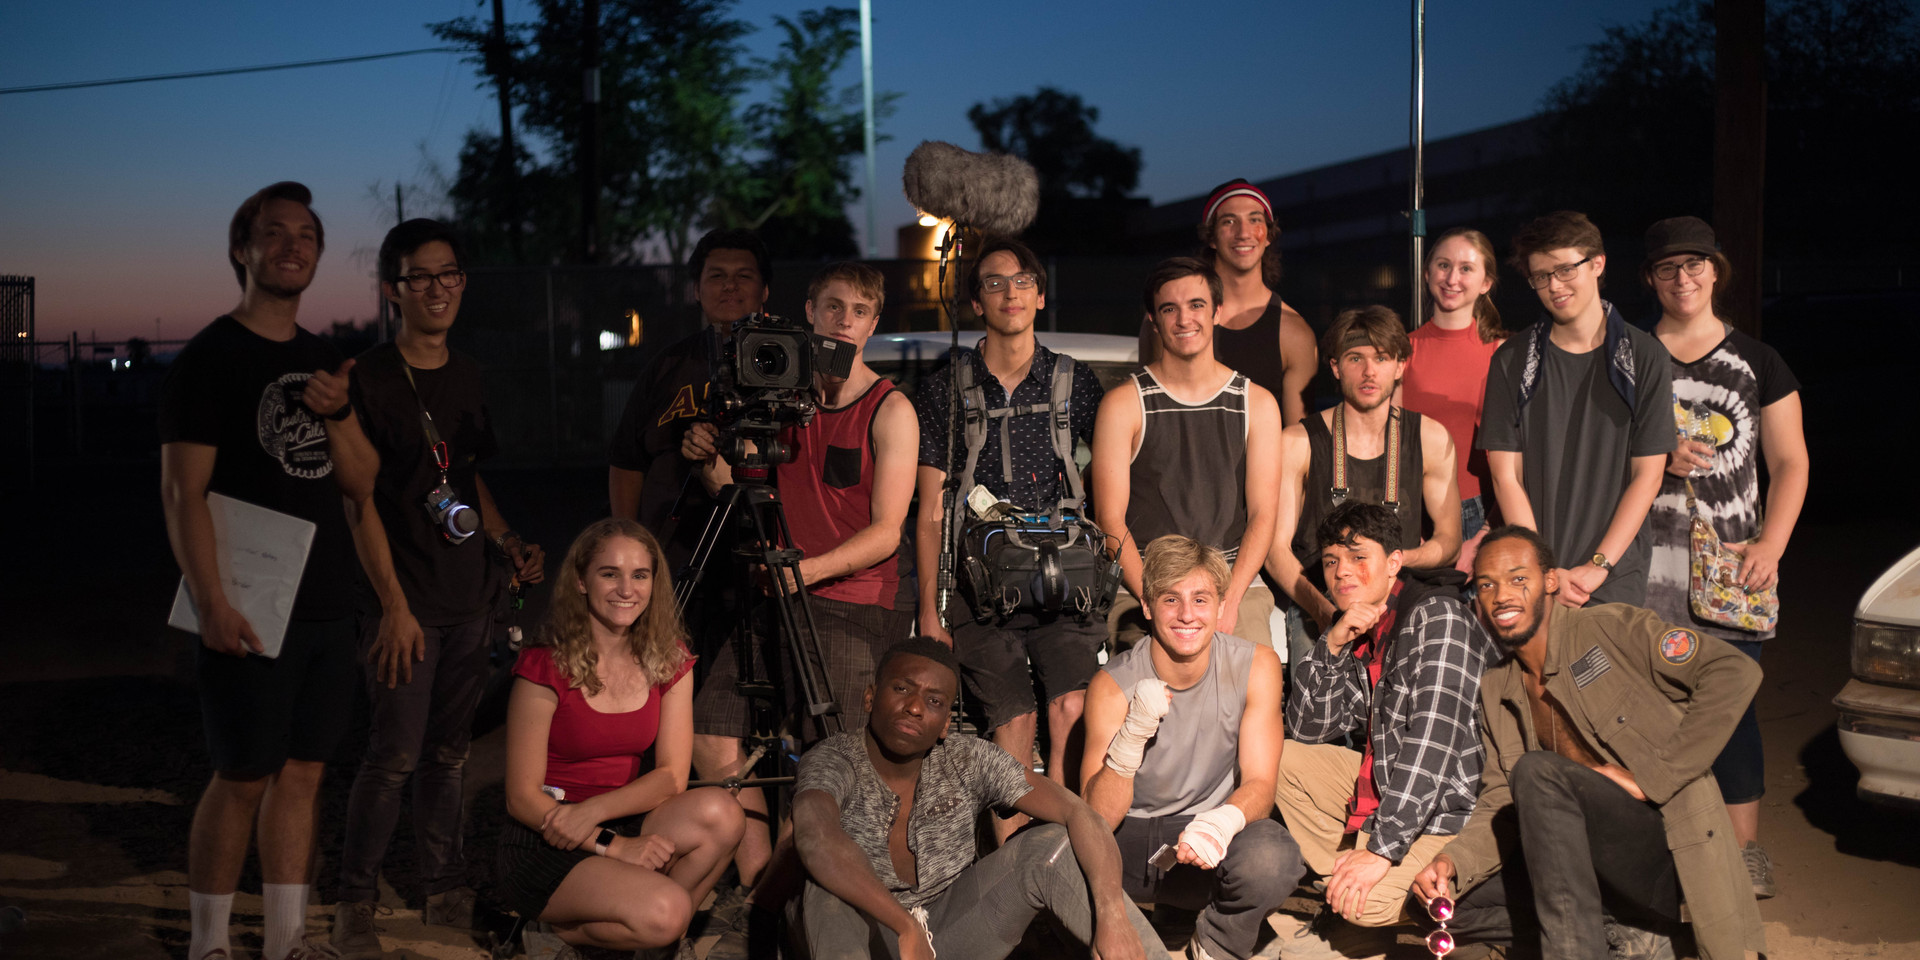 Cast and Crew (most of them)